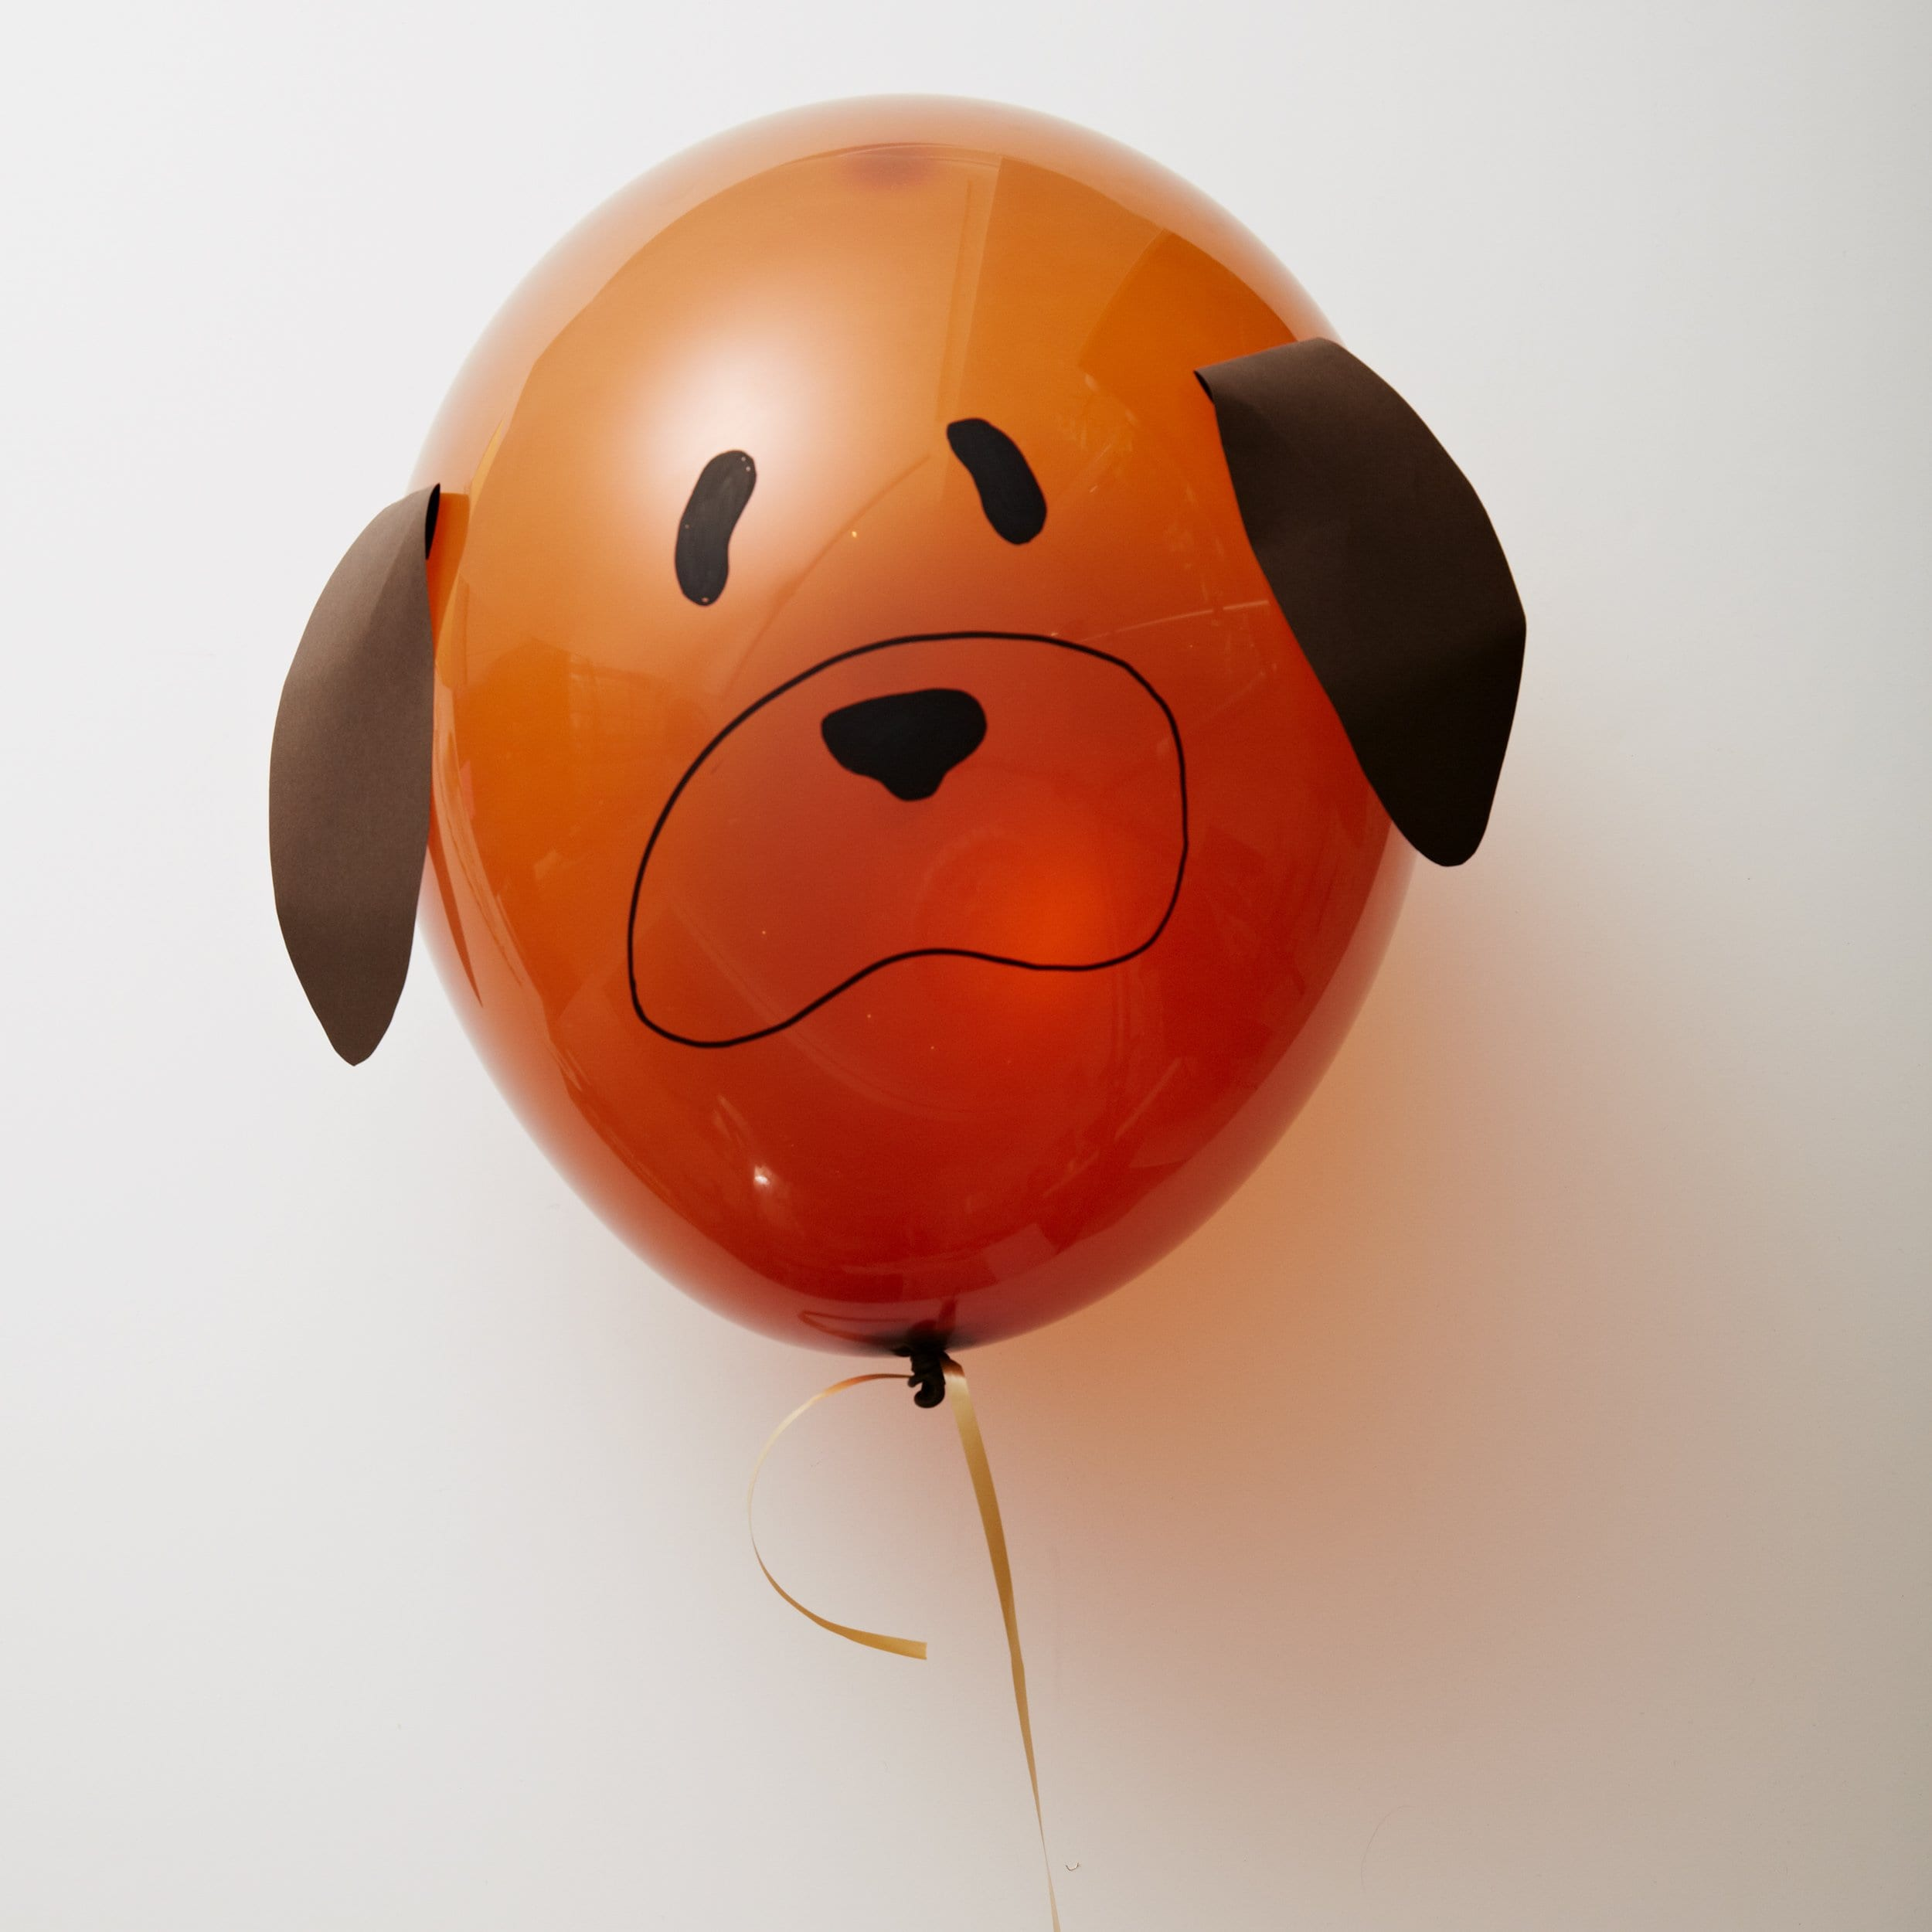 darcy_miller_how_to_dog-balloon_01